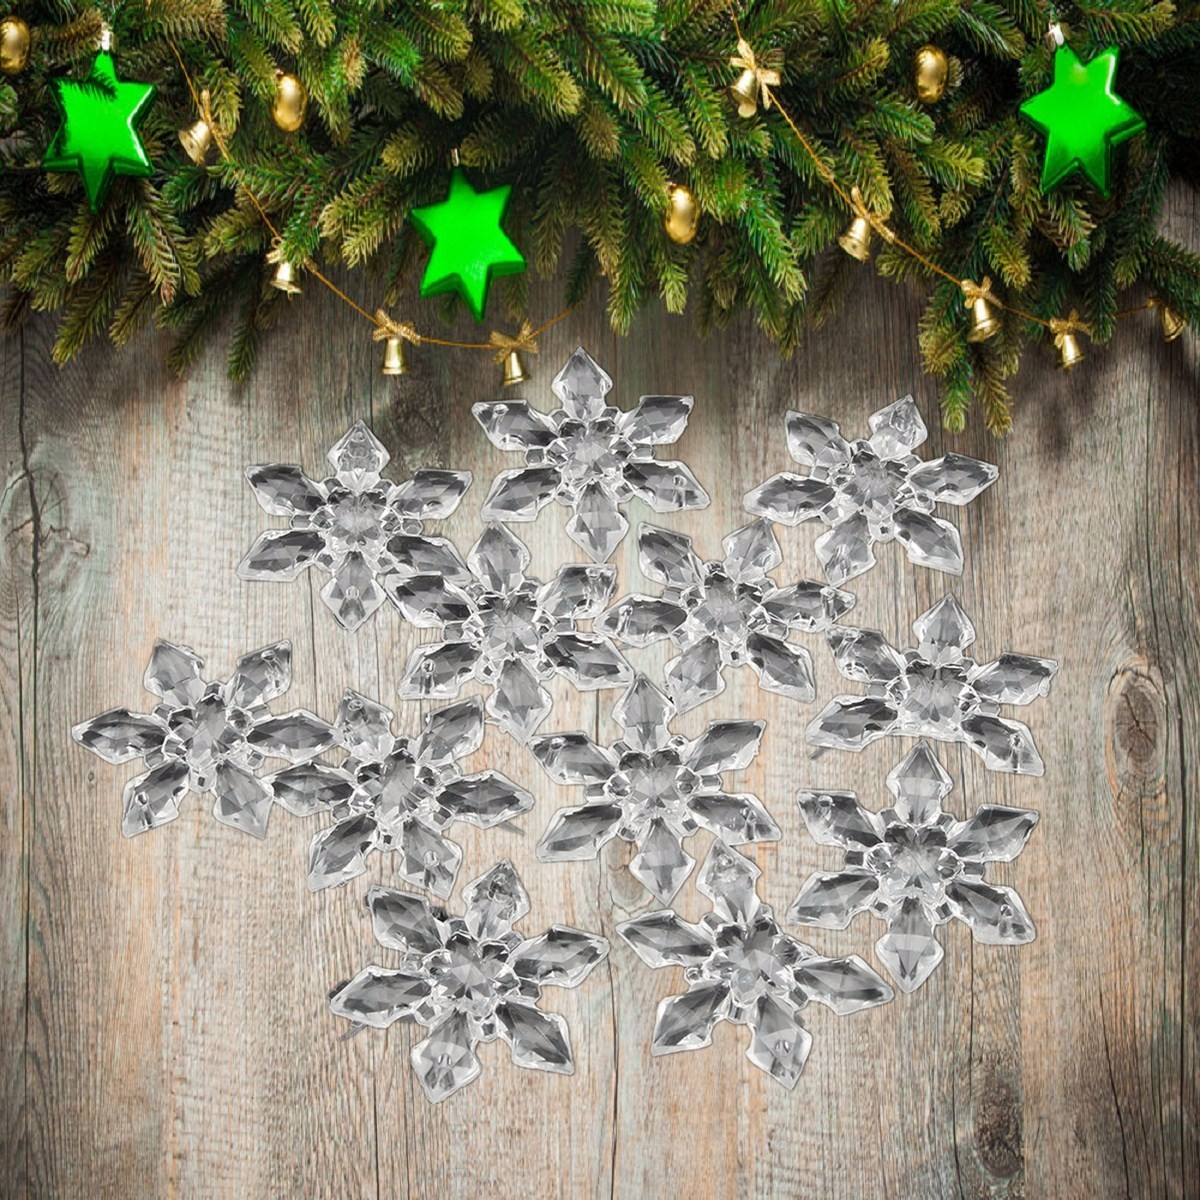 12pcs snowflakes ornaments gift party christmas tree for 3d hanging snowflake decoration